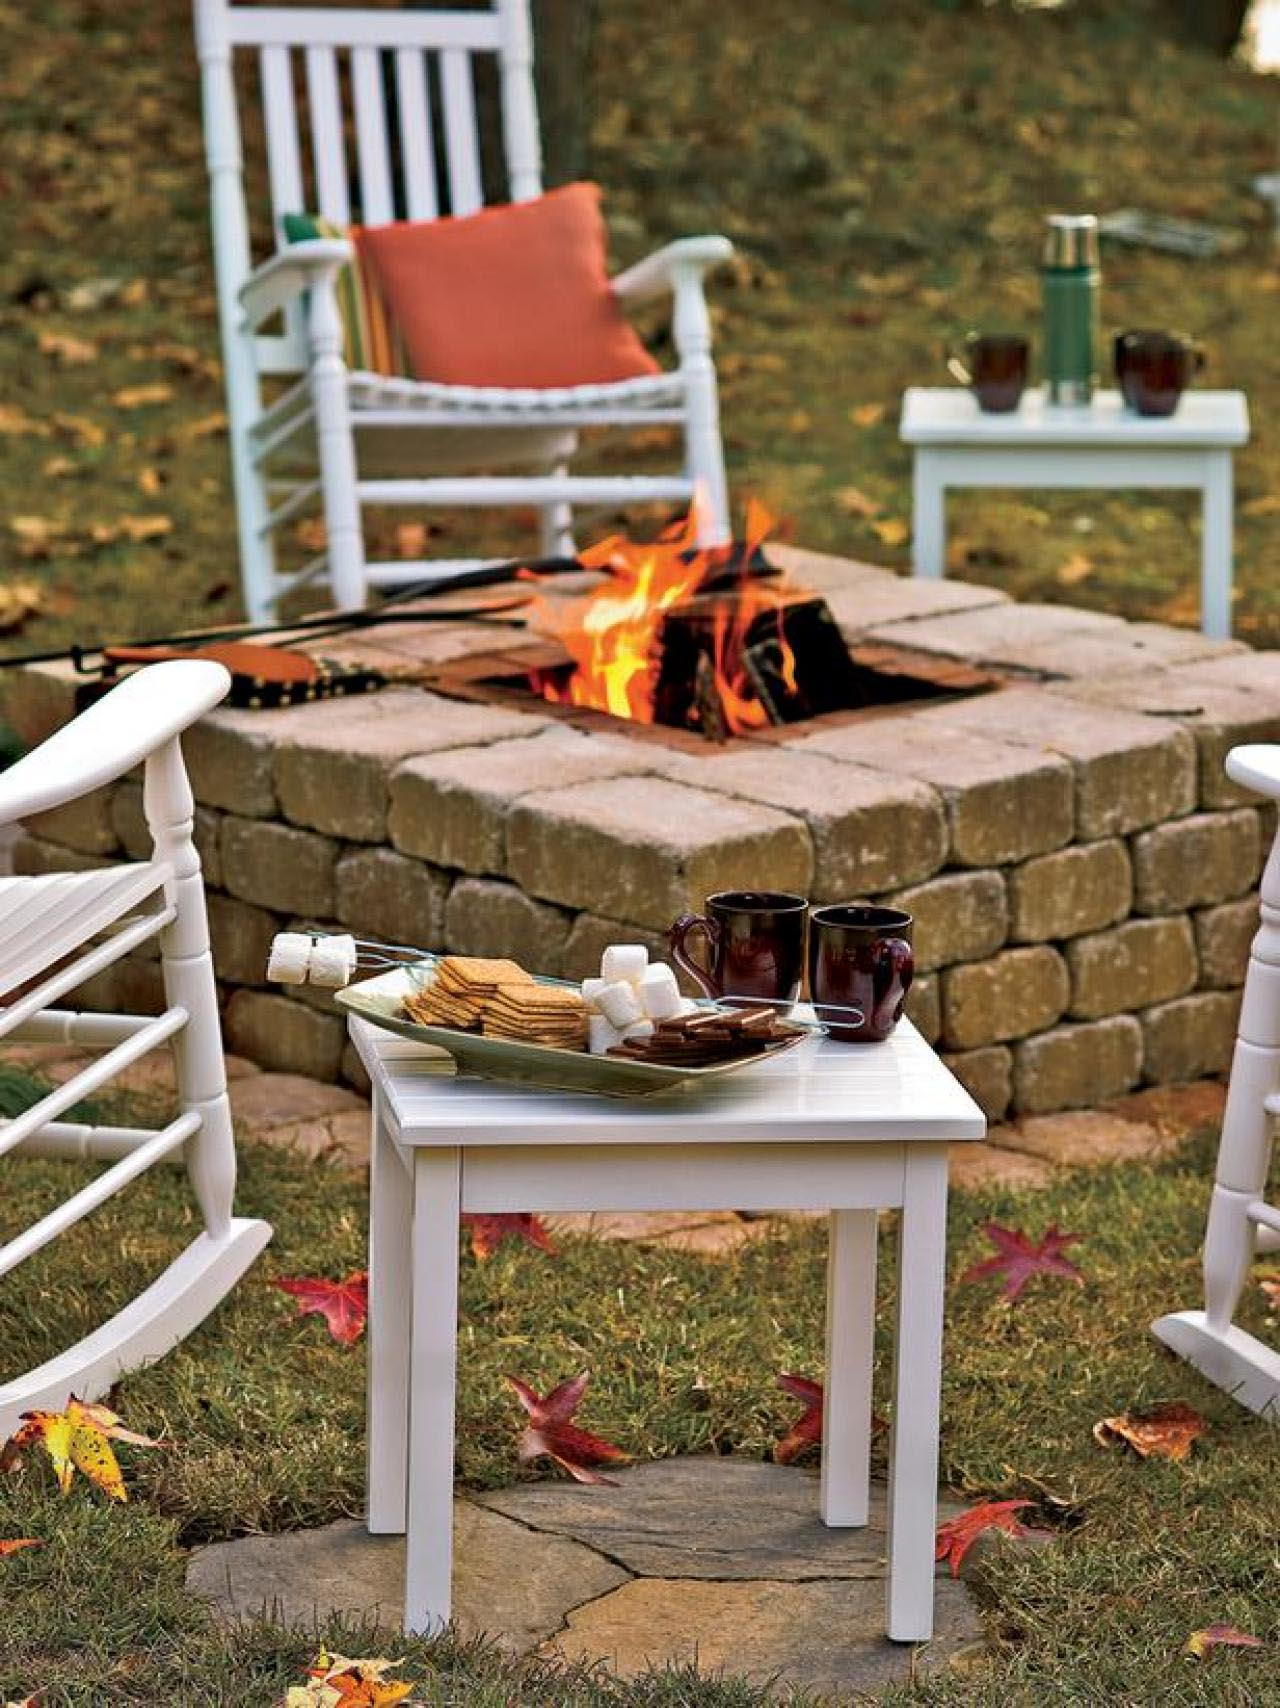 Build dig sunken fire pit fire pit design ideas for Diy brick projects